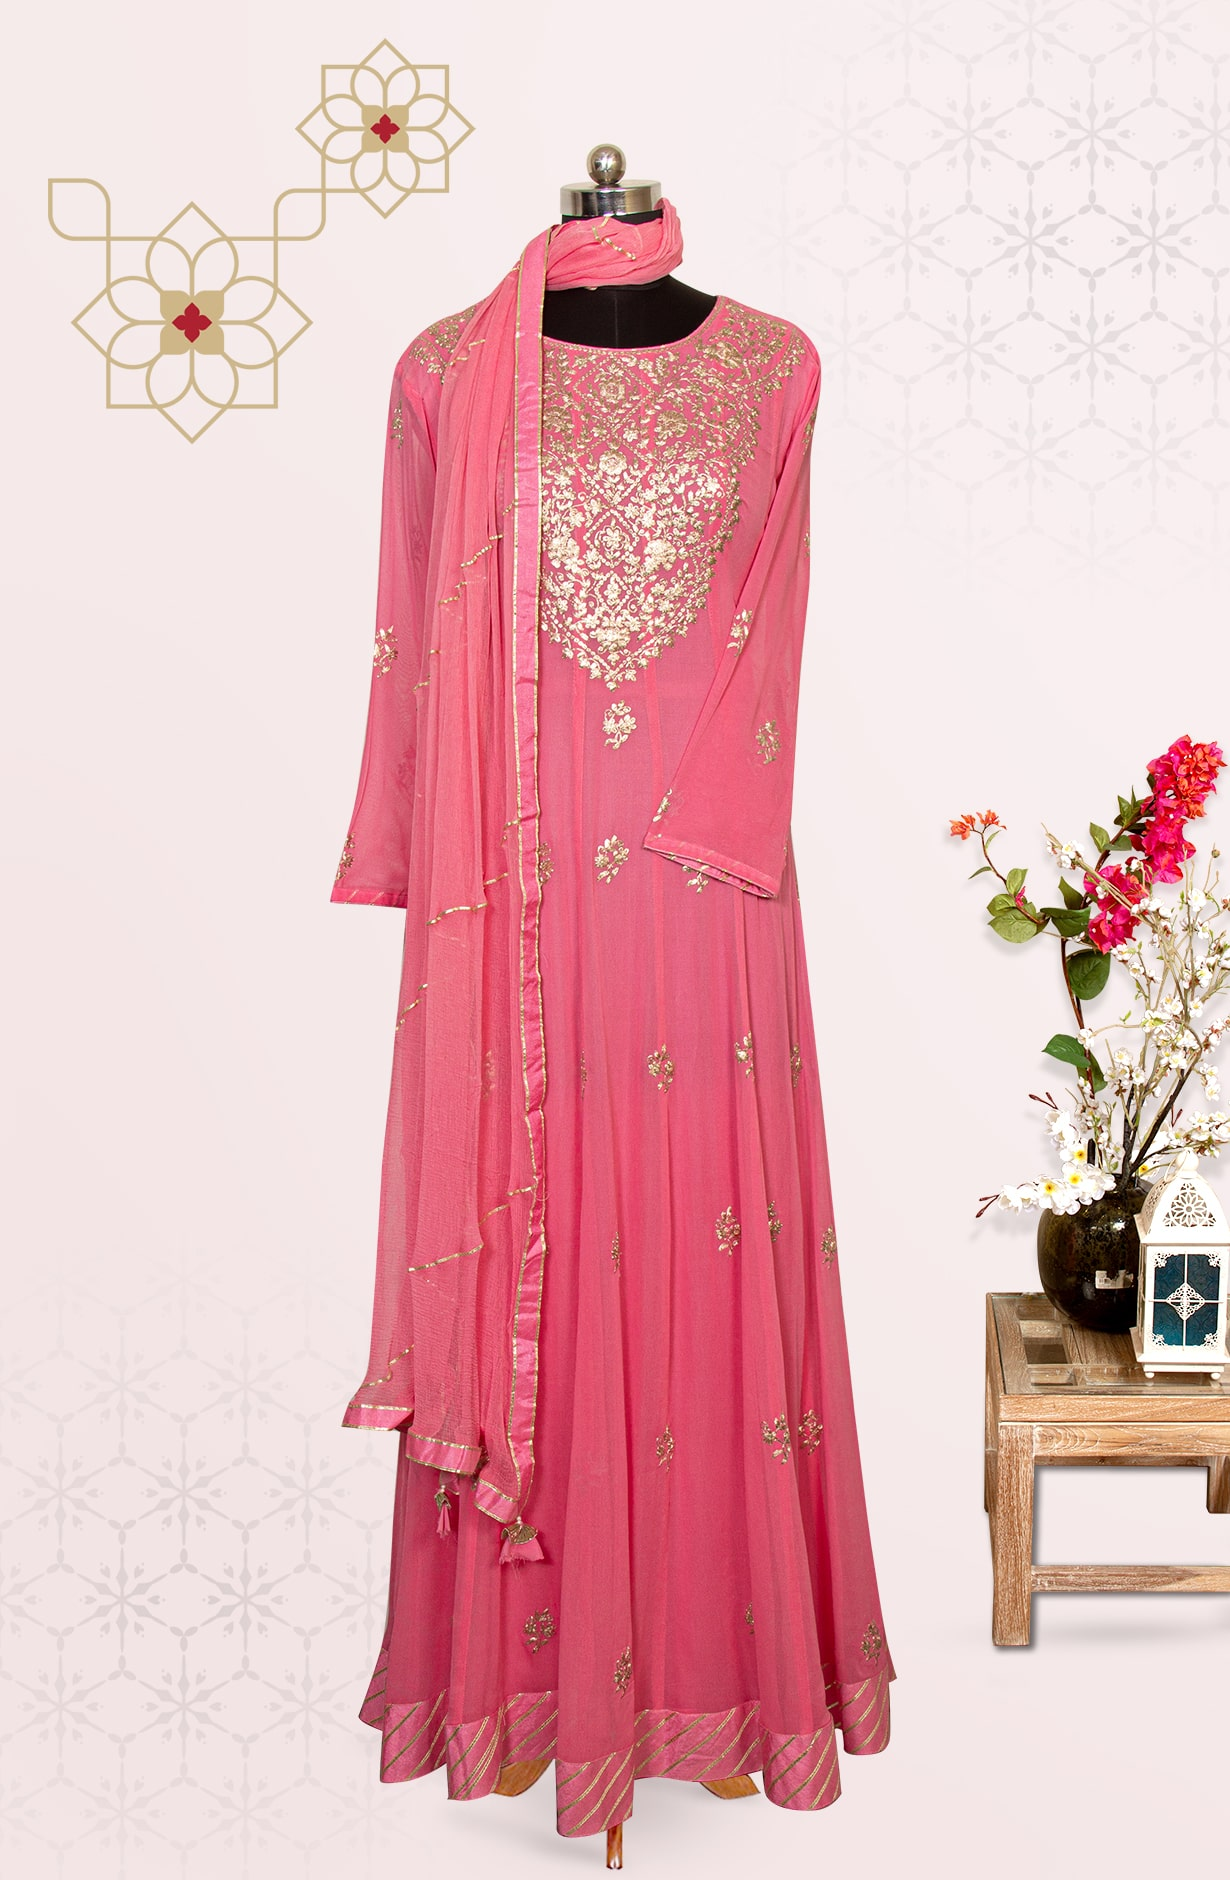 Pink Party Wear Exclusive Long Suit Set with Chiffon Dupatta - 691-F6952A